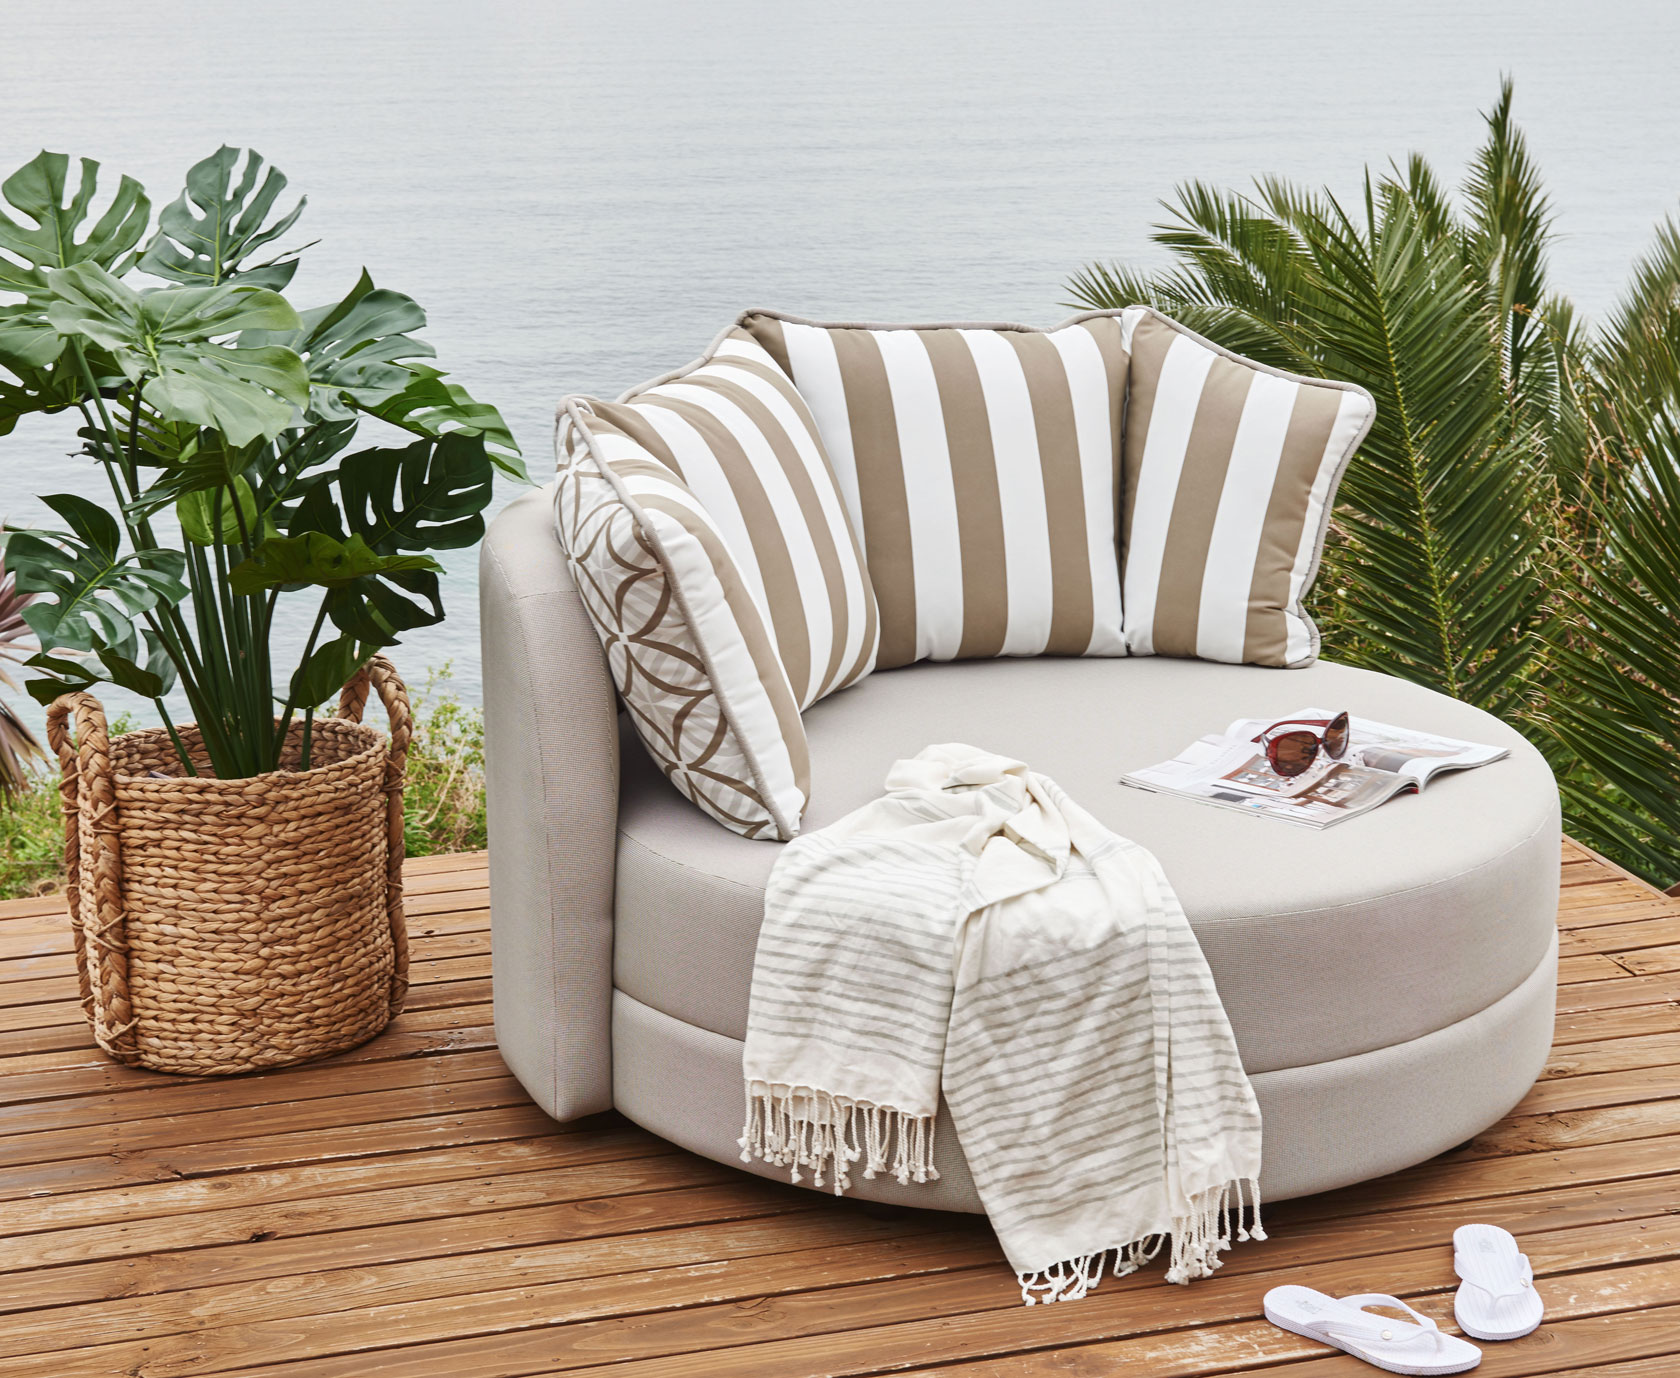 Sunpod outdoor daybed